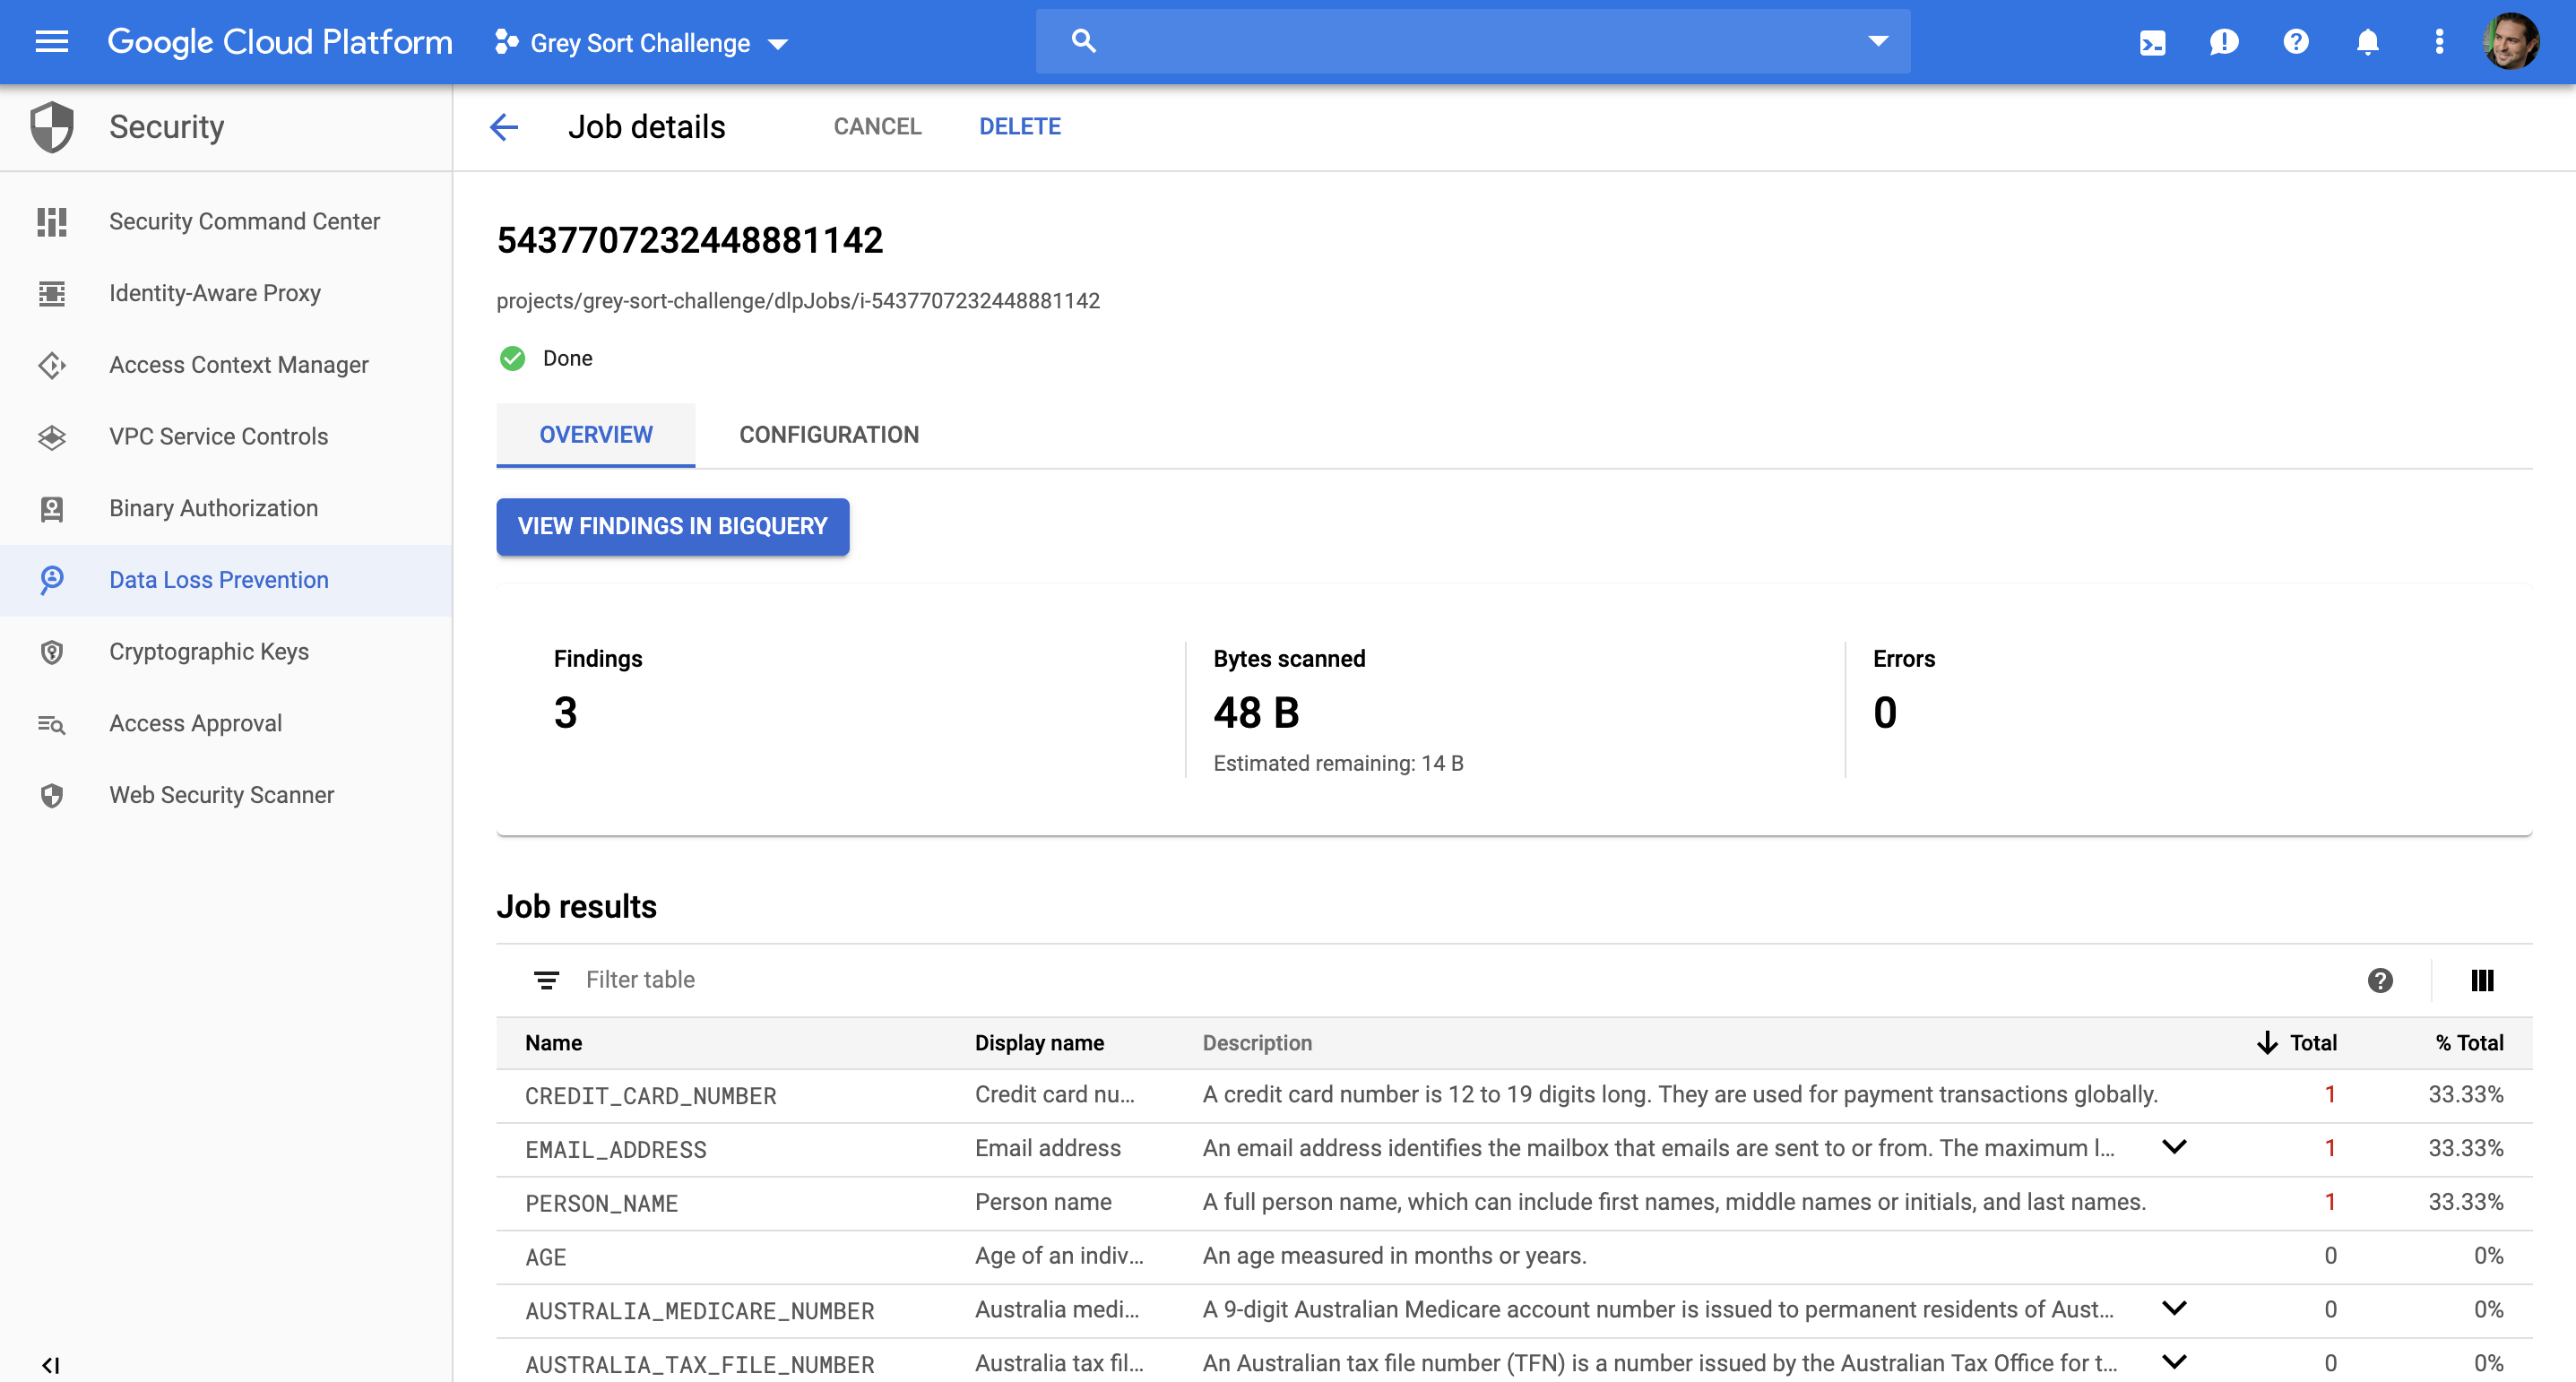 Event-driven PII scanning in BigQuery using Stackdriver, Cloud